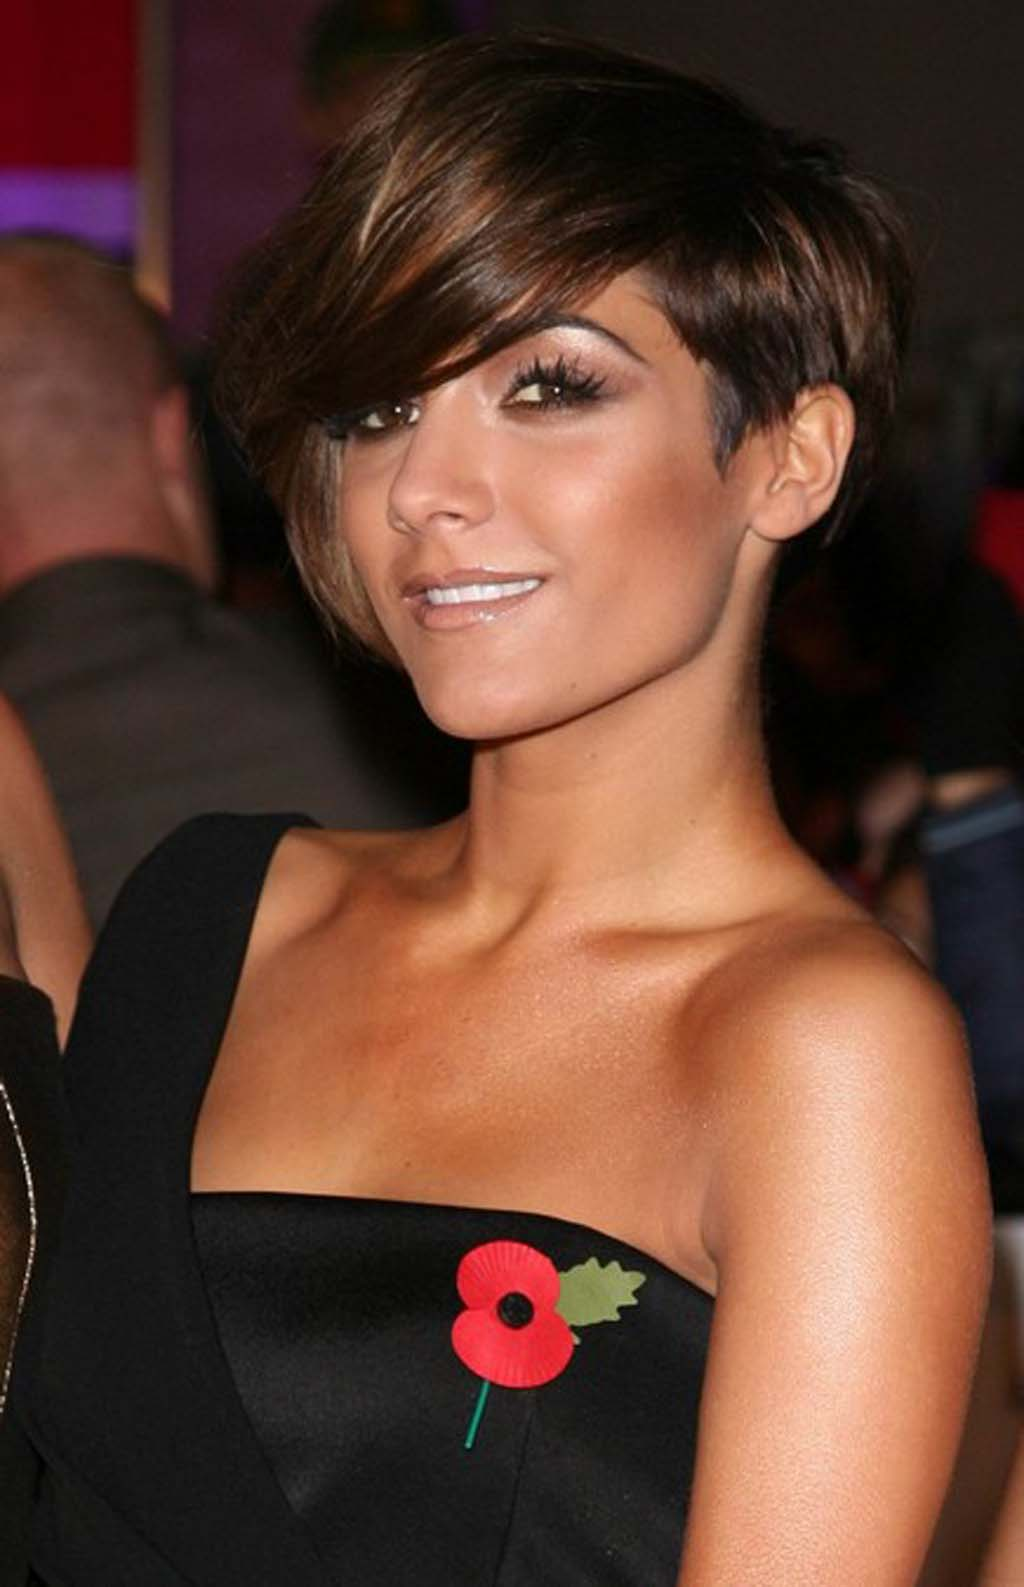 http://3.bp.blogspot.com/-O_v_3La-6Qs/T32Em7tQnSI/AAAAAAAADRc/_WC2gFizojI/s1600/Frankie-Sandford-pics-photos-pictures-hairstyles-2012-celebrity-singer+%25287%2529.jpg